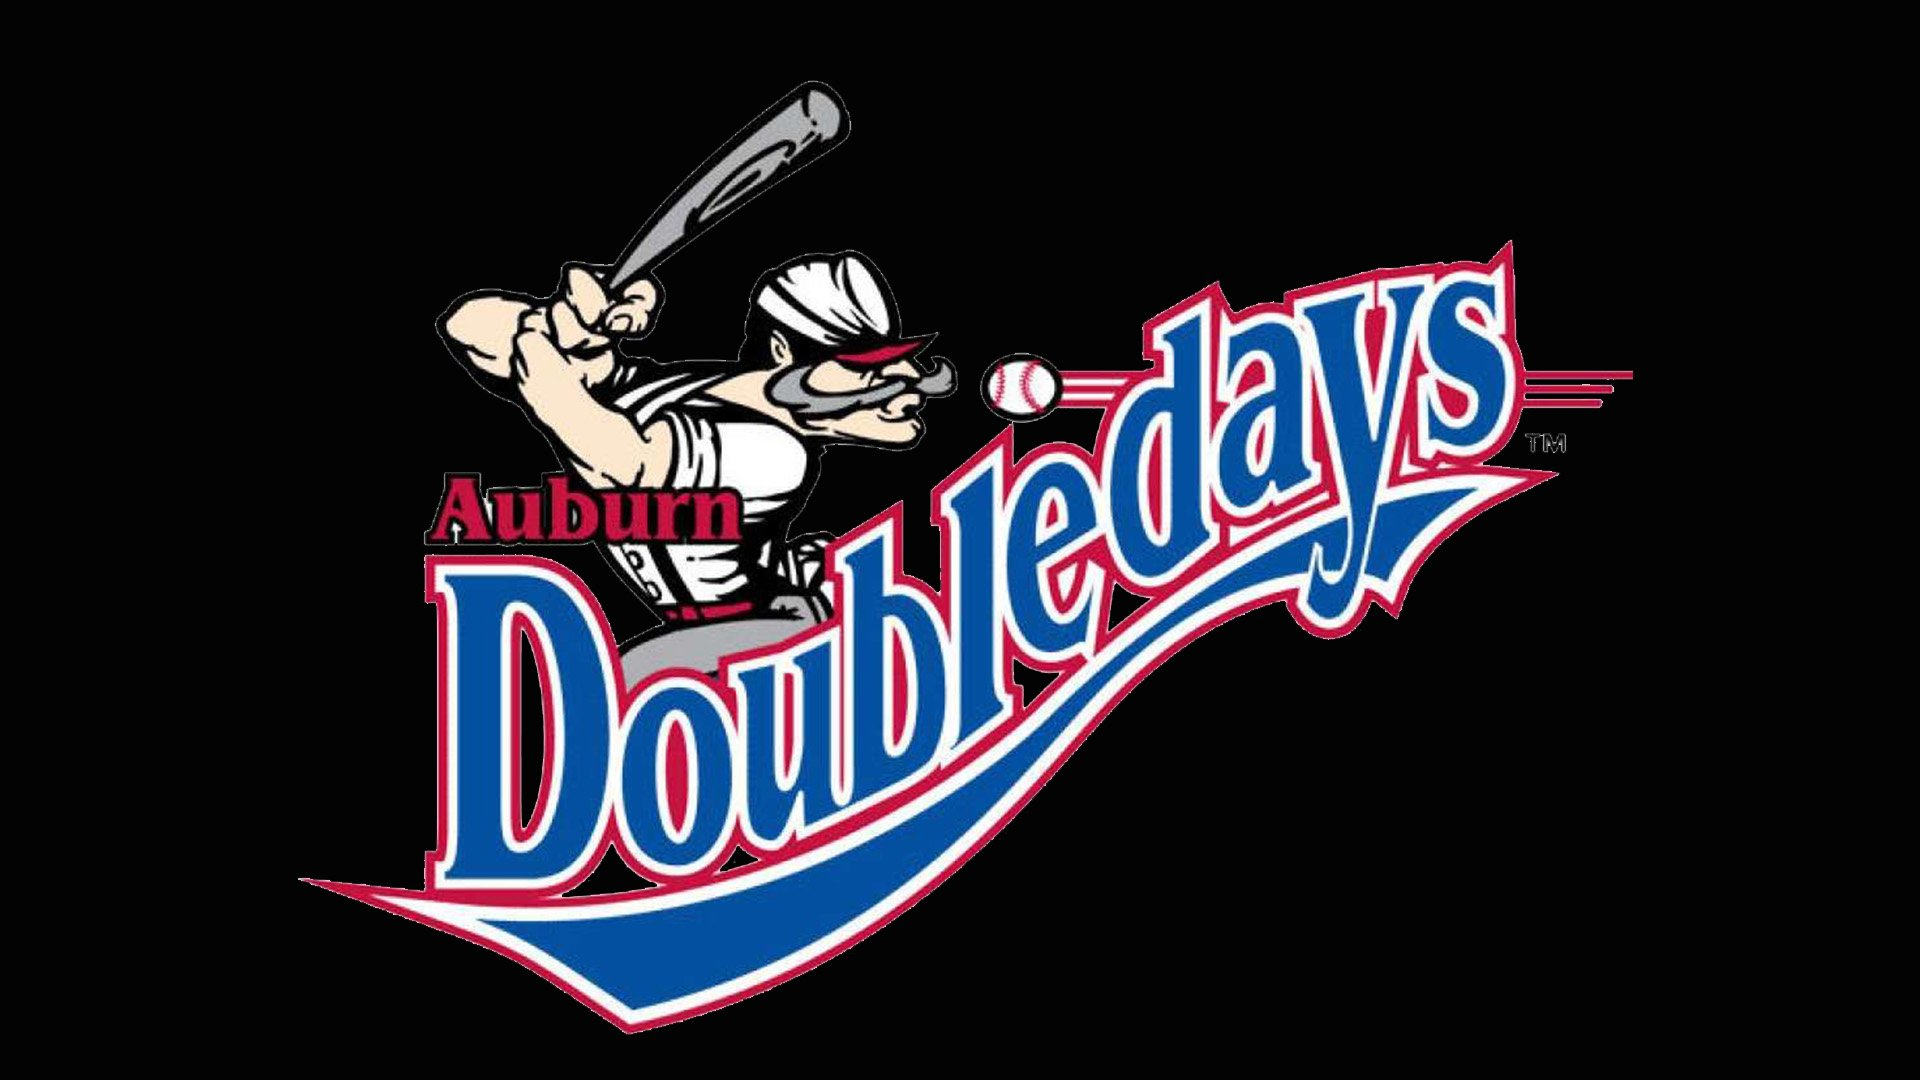 Auburn Doubledays general manager resigns